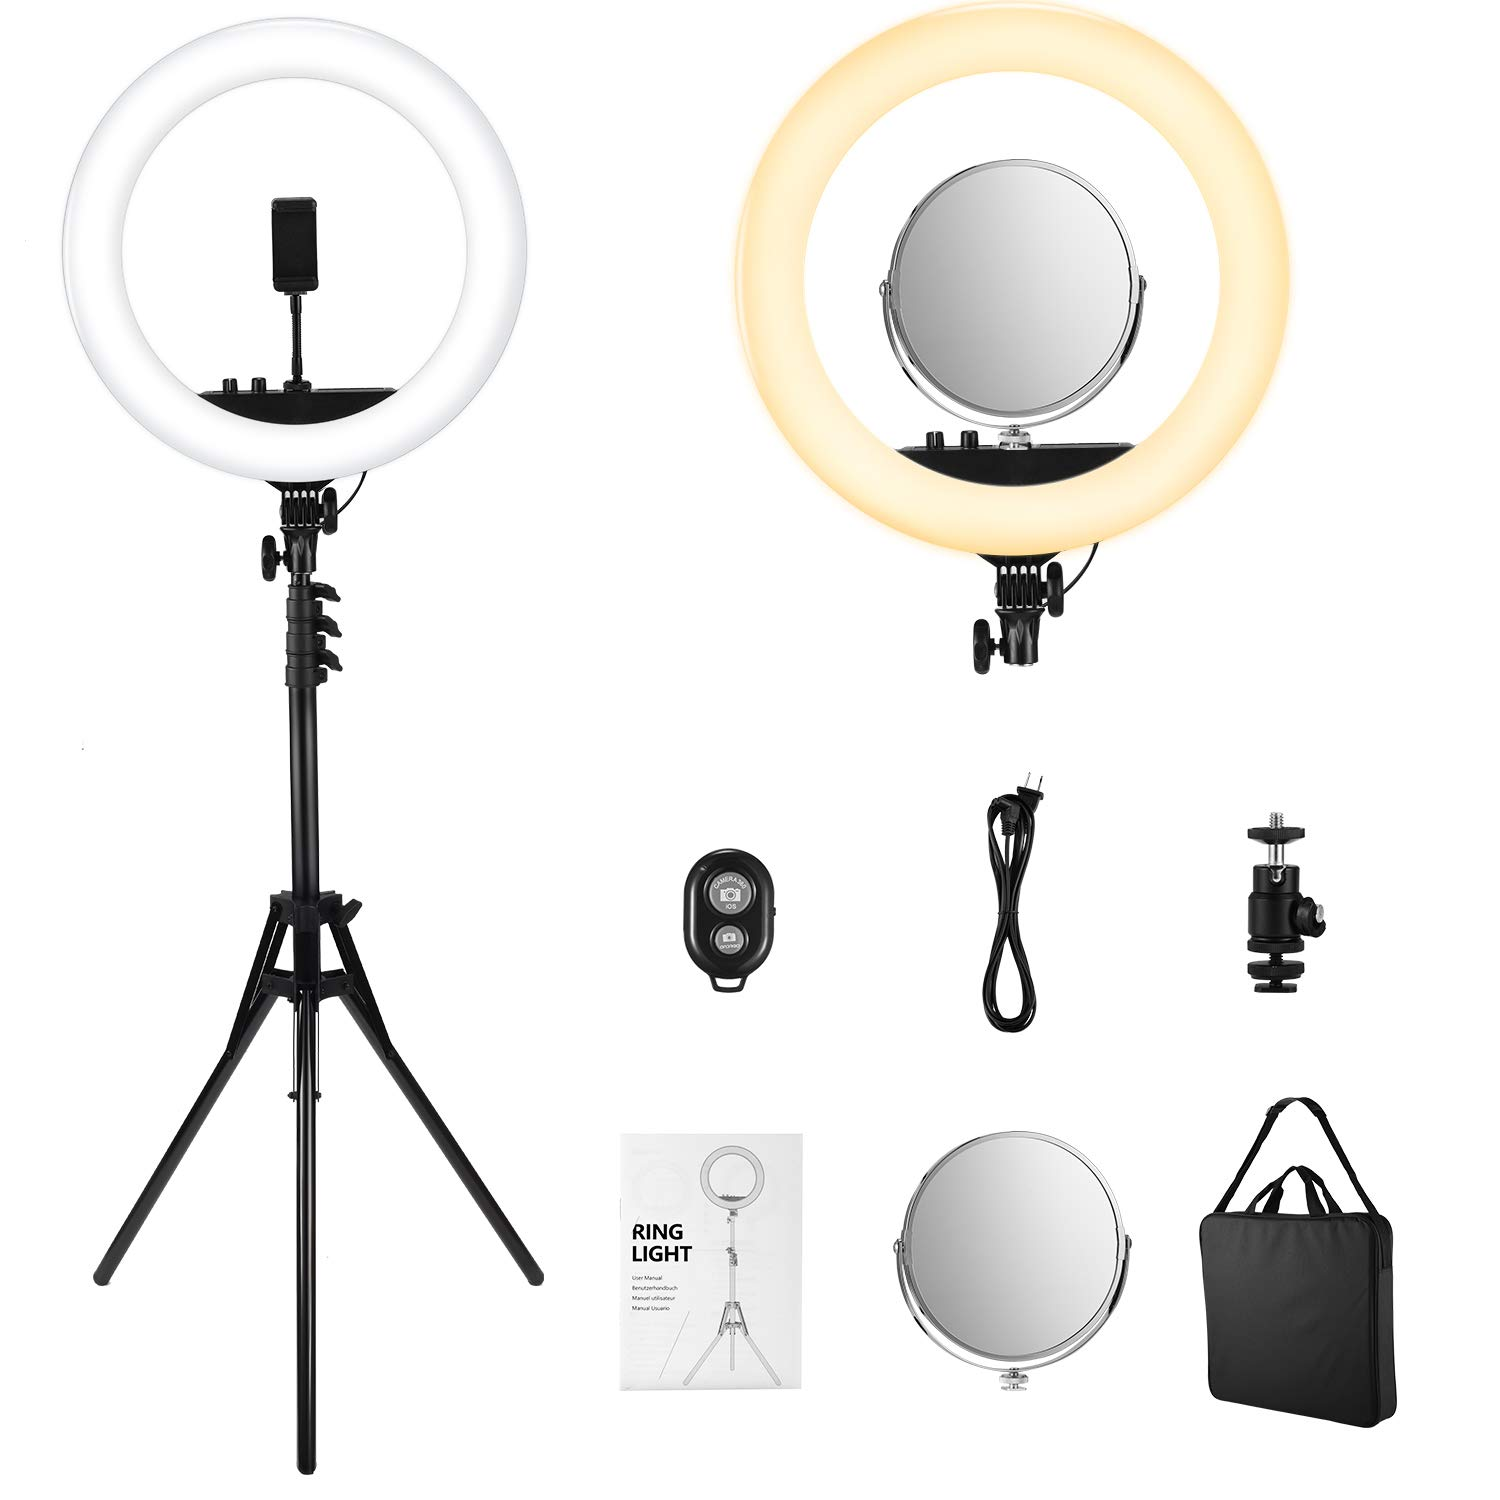 VicTsing LED Ring Light with Color Adjustment Knobs, 18'' Dimmable Ring Light Kit 55W 3200-5600K with Make-up Mirror, 71'' Tripod, Carrying Bag, etc. for Vlog, Video Shooting, Portrait, 2019 Upgraded